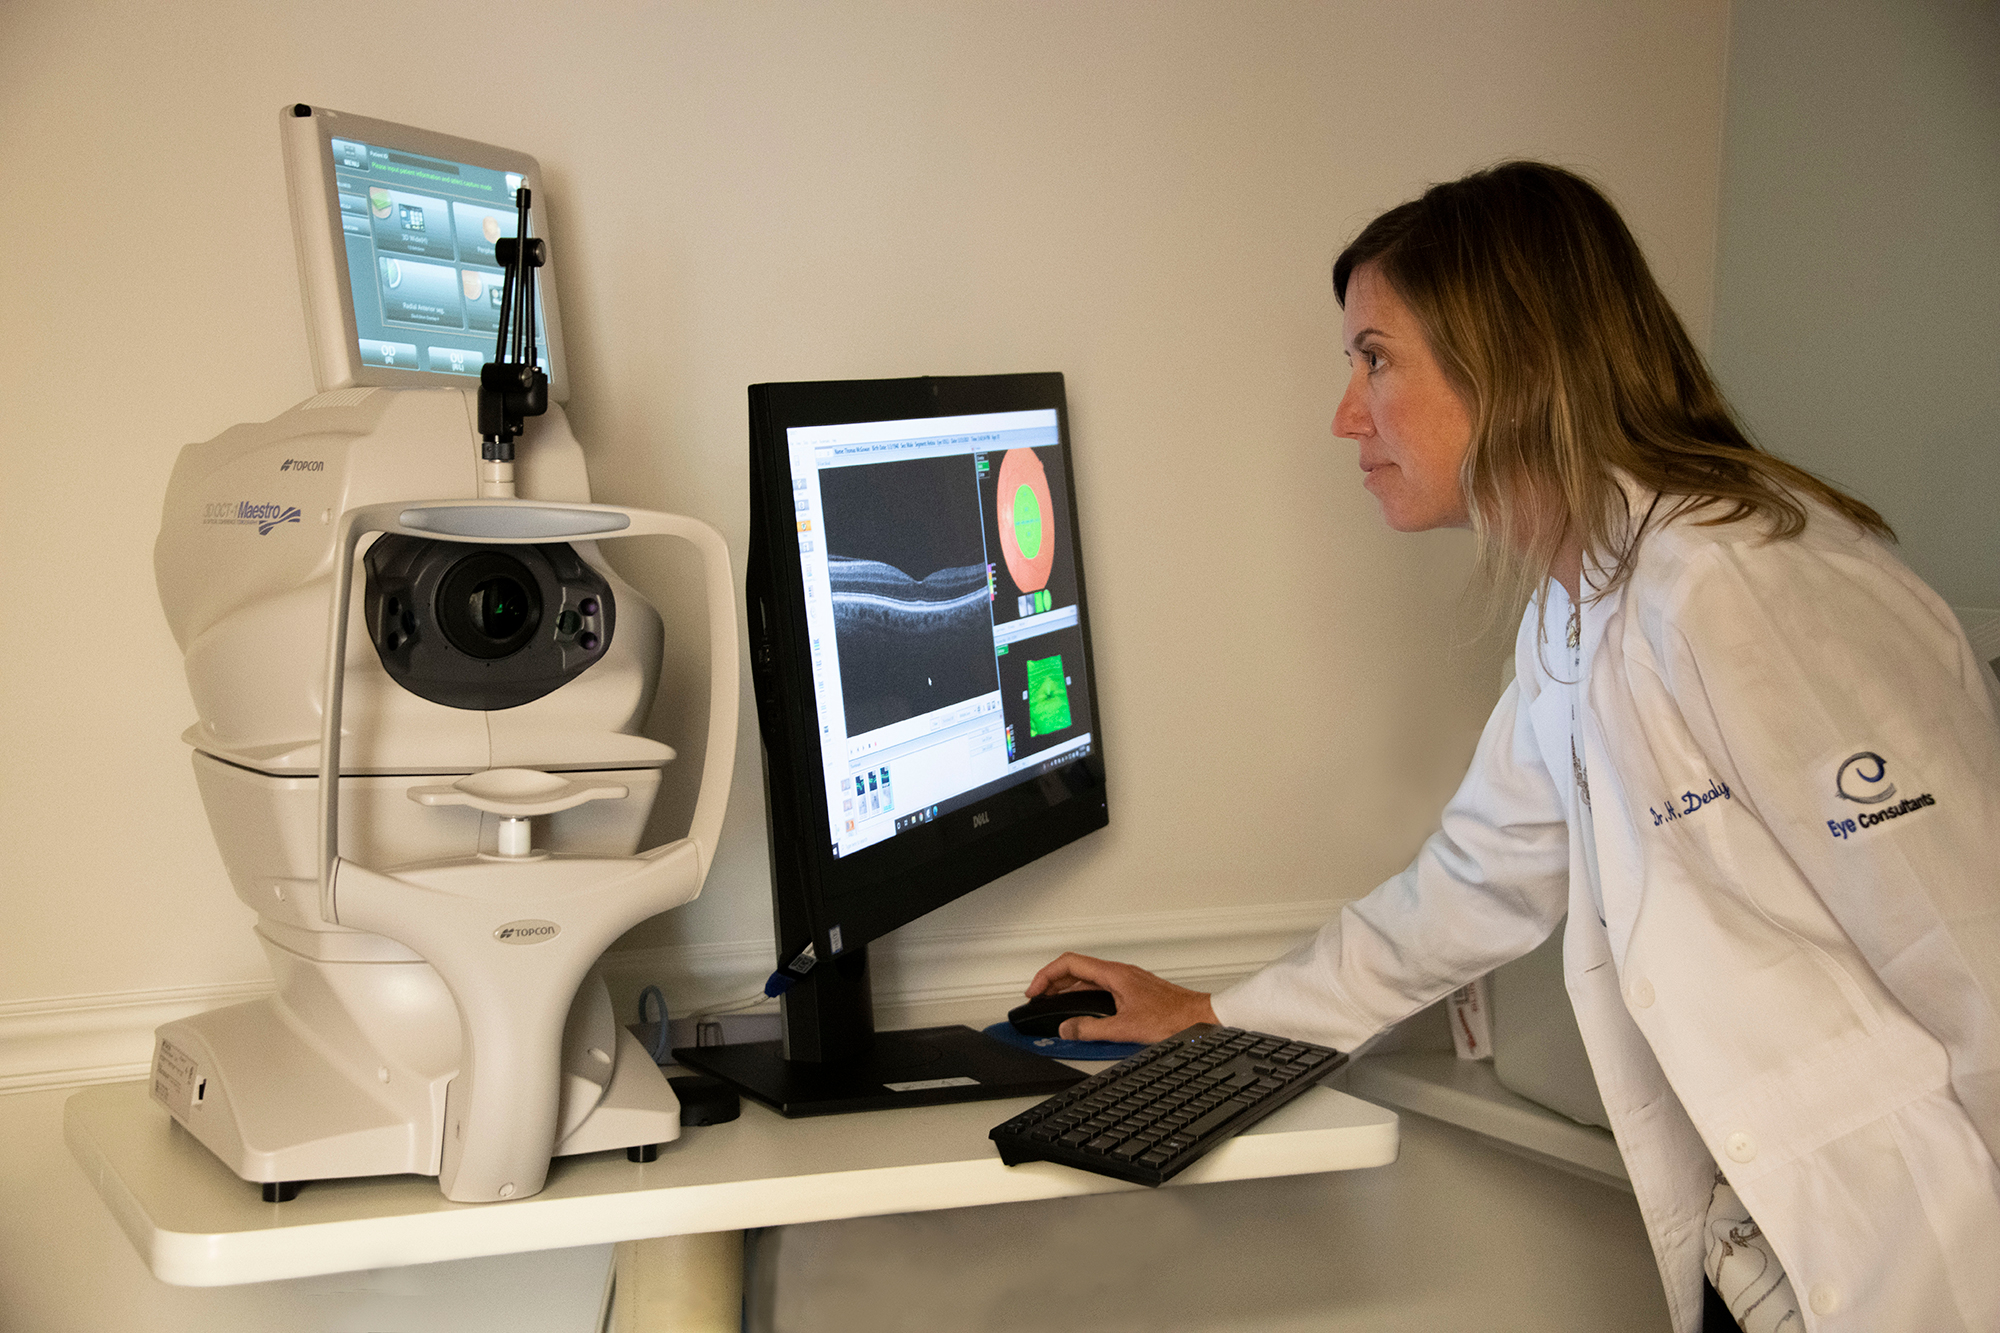 Dr. Dealy checking scans of eye for cataracts